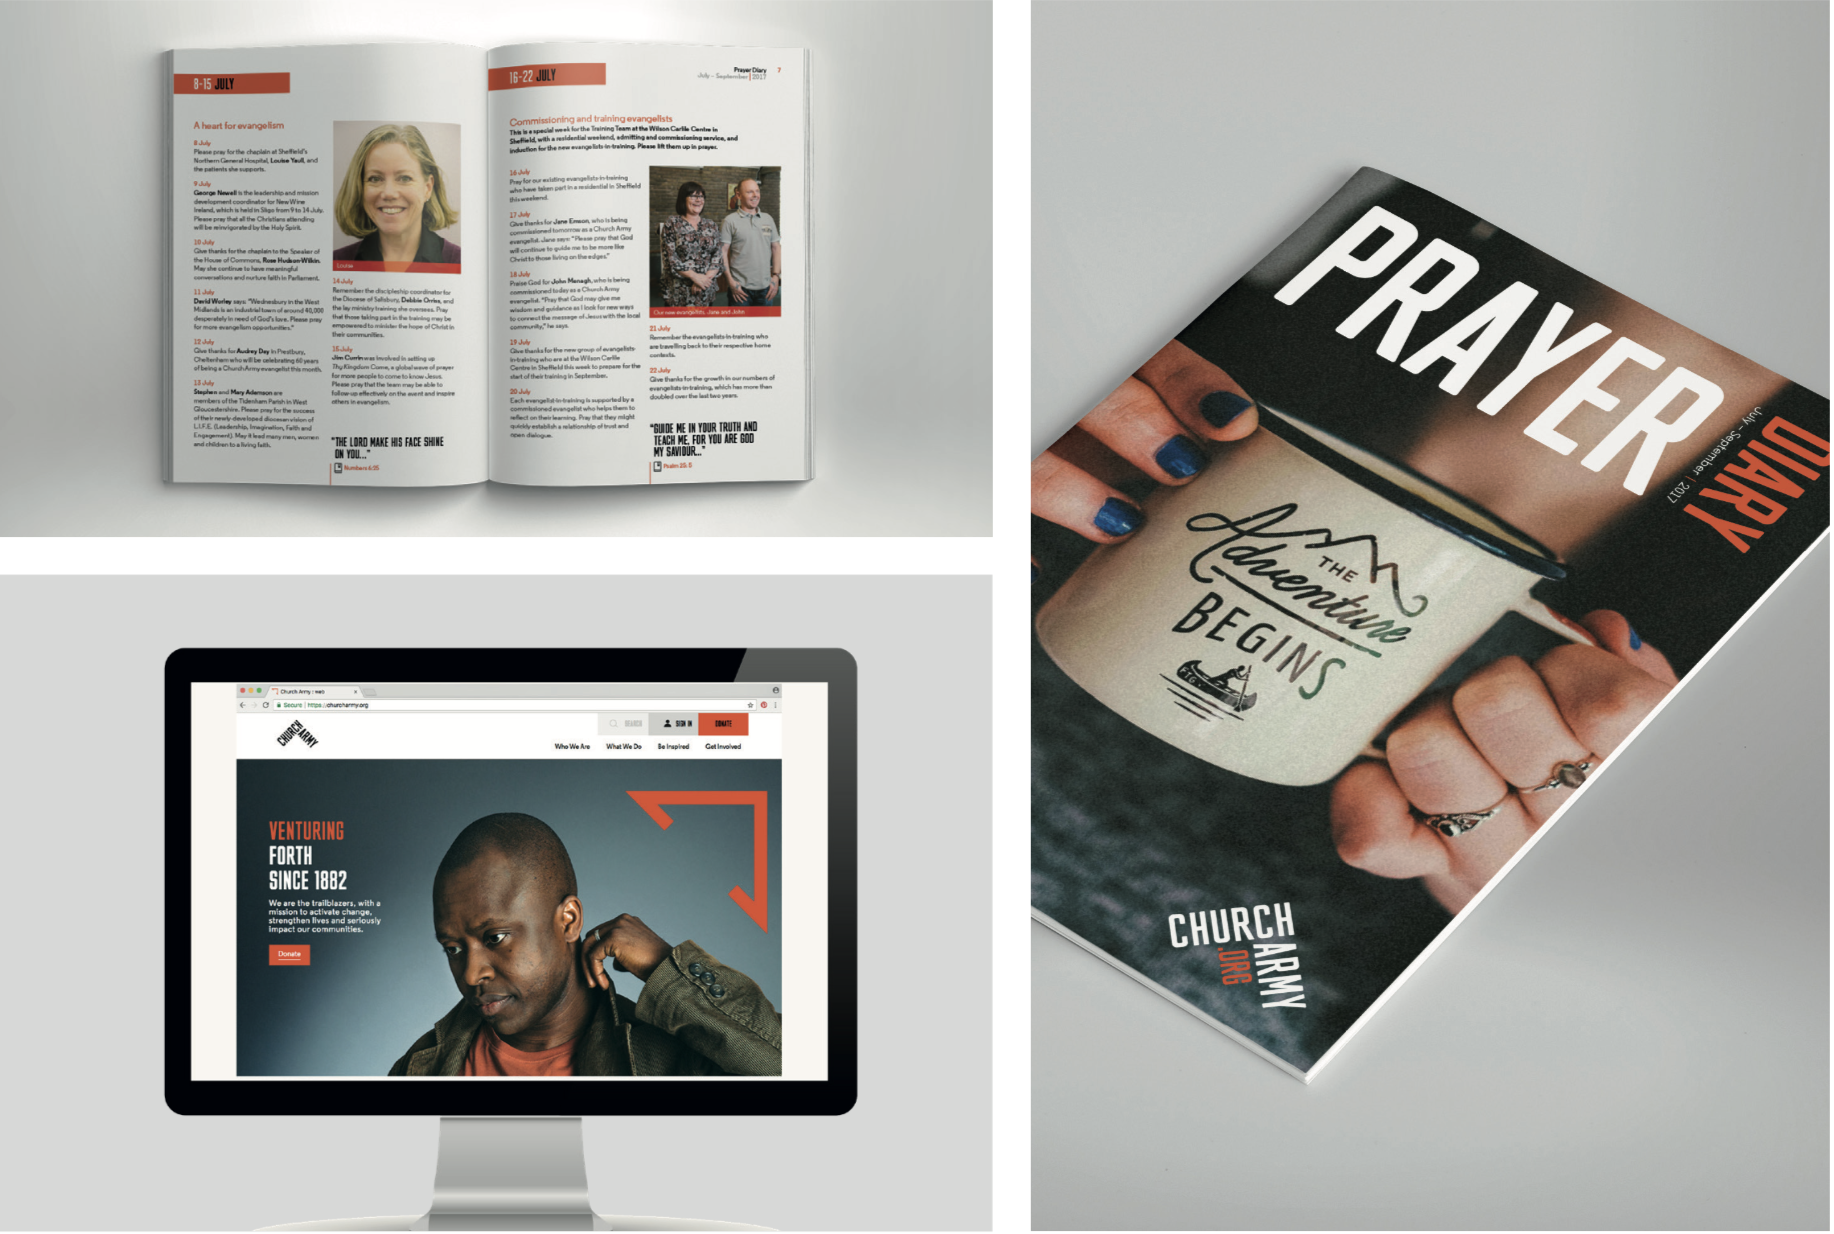 CHURCH ARMY - CPO partnered with Church Army to implement their new brand and printed resources. We went on to deliver a large scale strategic review of their digital communications to further develop the reach of their branding.